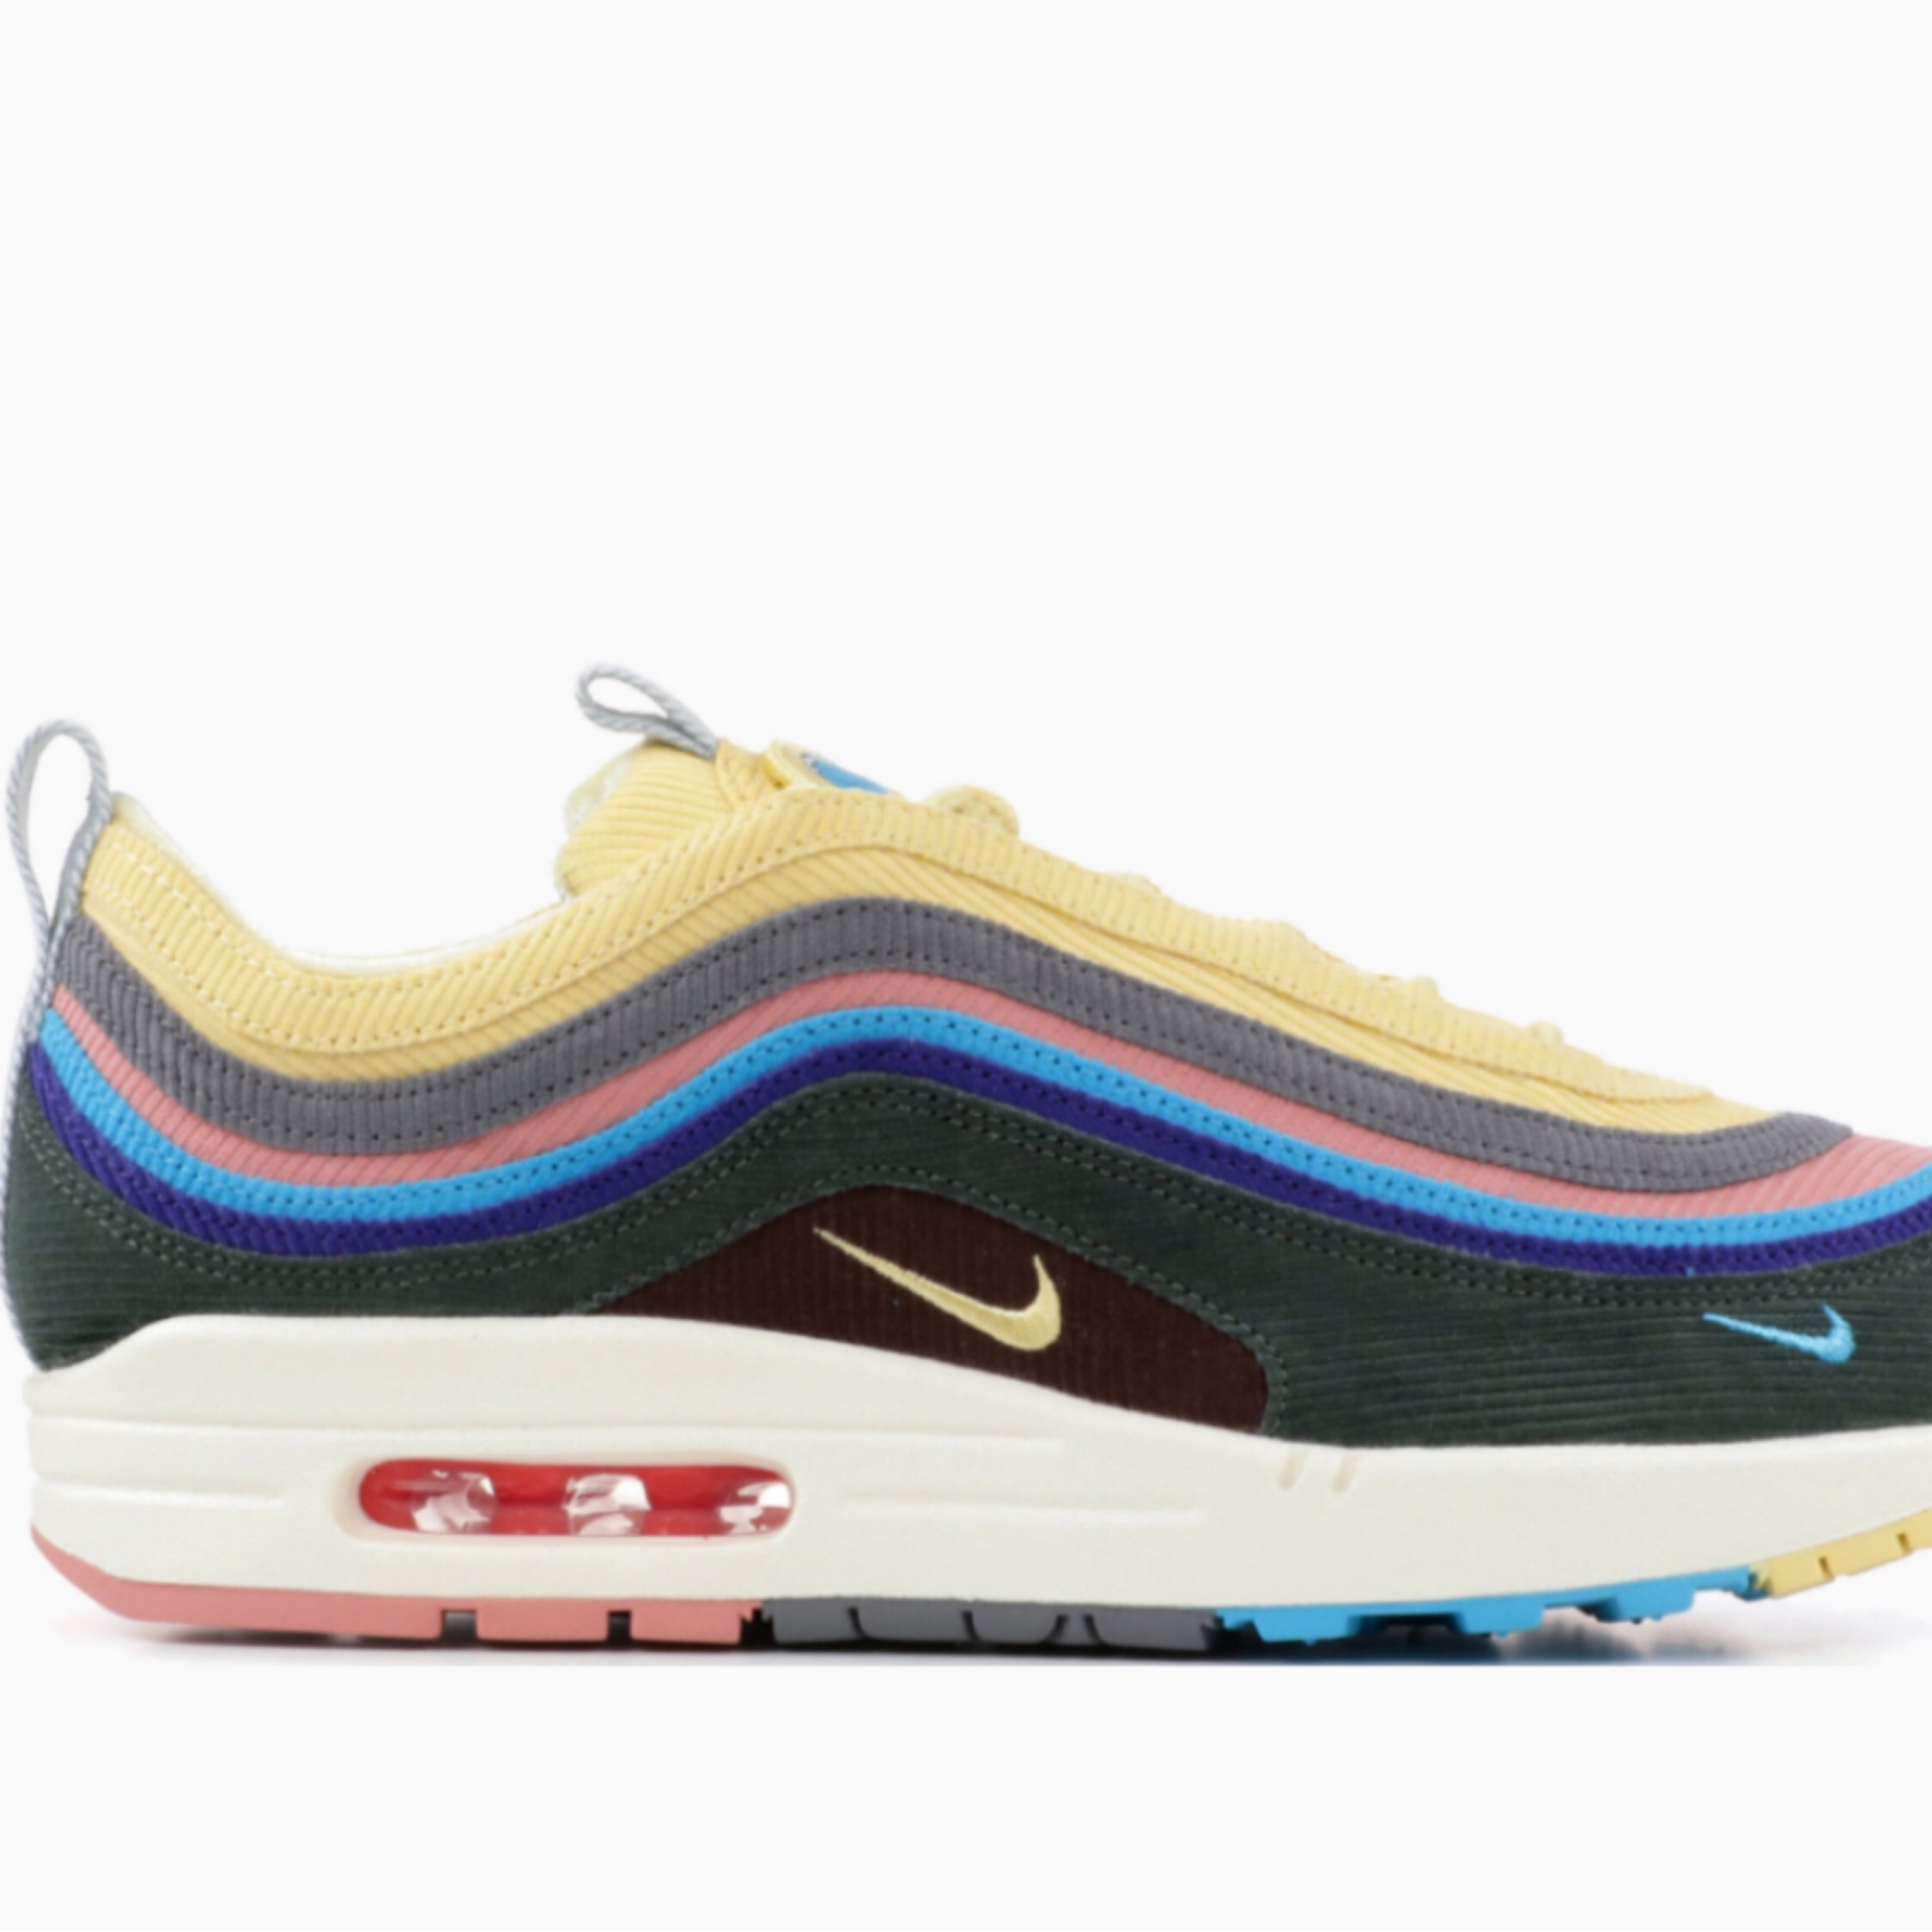 Air Max 1/97 Sean Wotherspoon (Extra Laces)